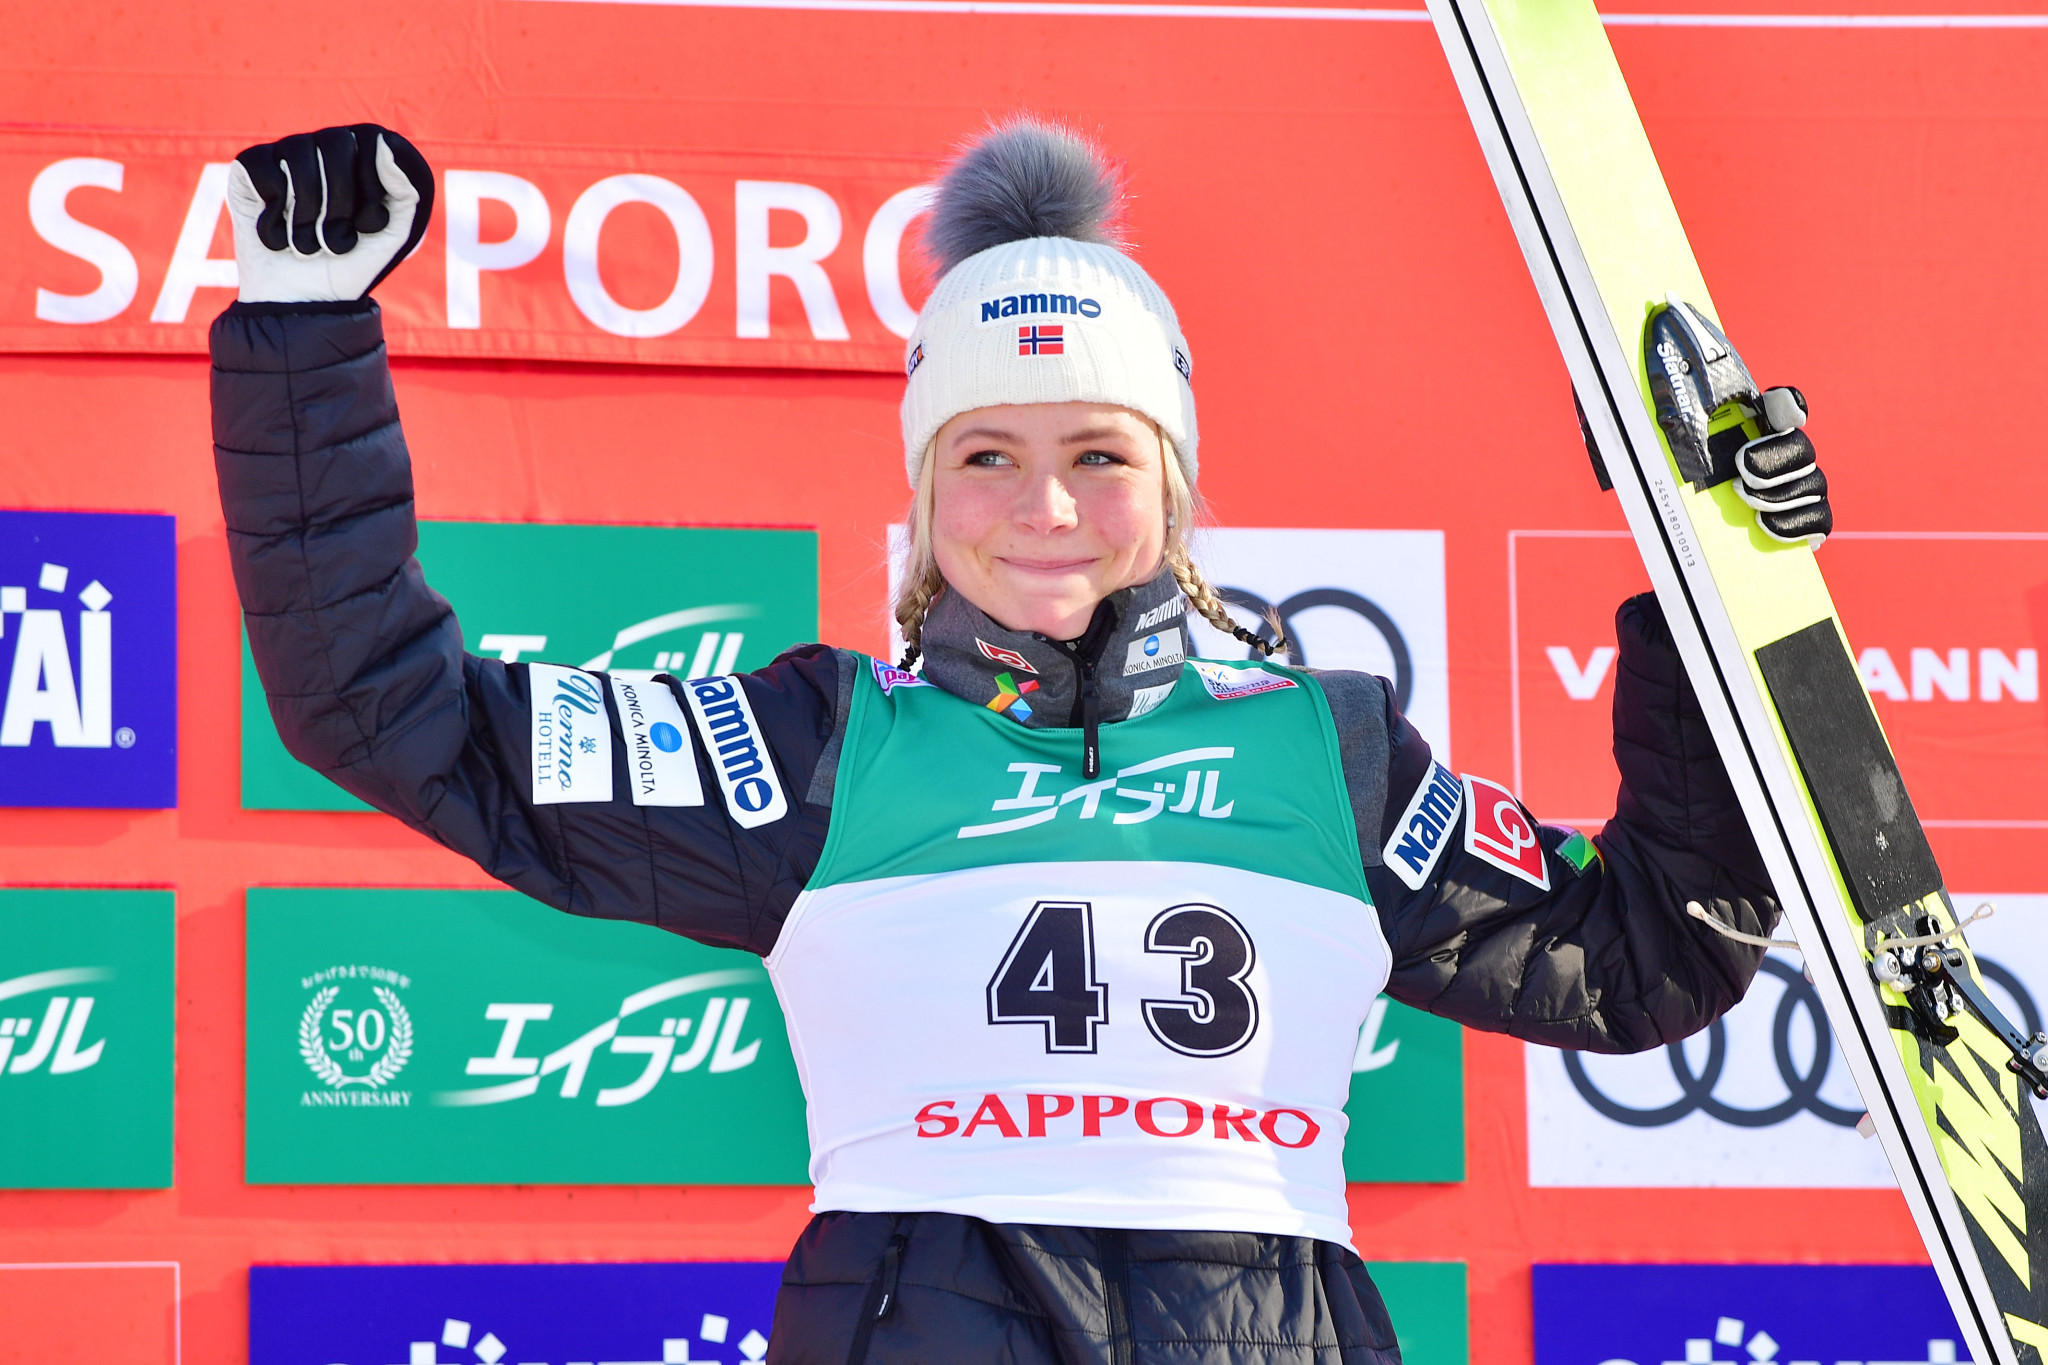 Olympic champion Maren Lundby will seek another win on the women's circuit in Rasnov ©Getty Images